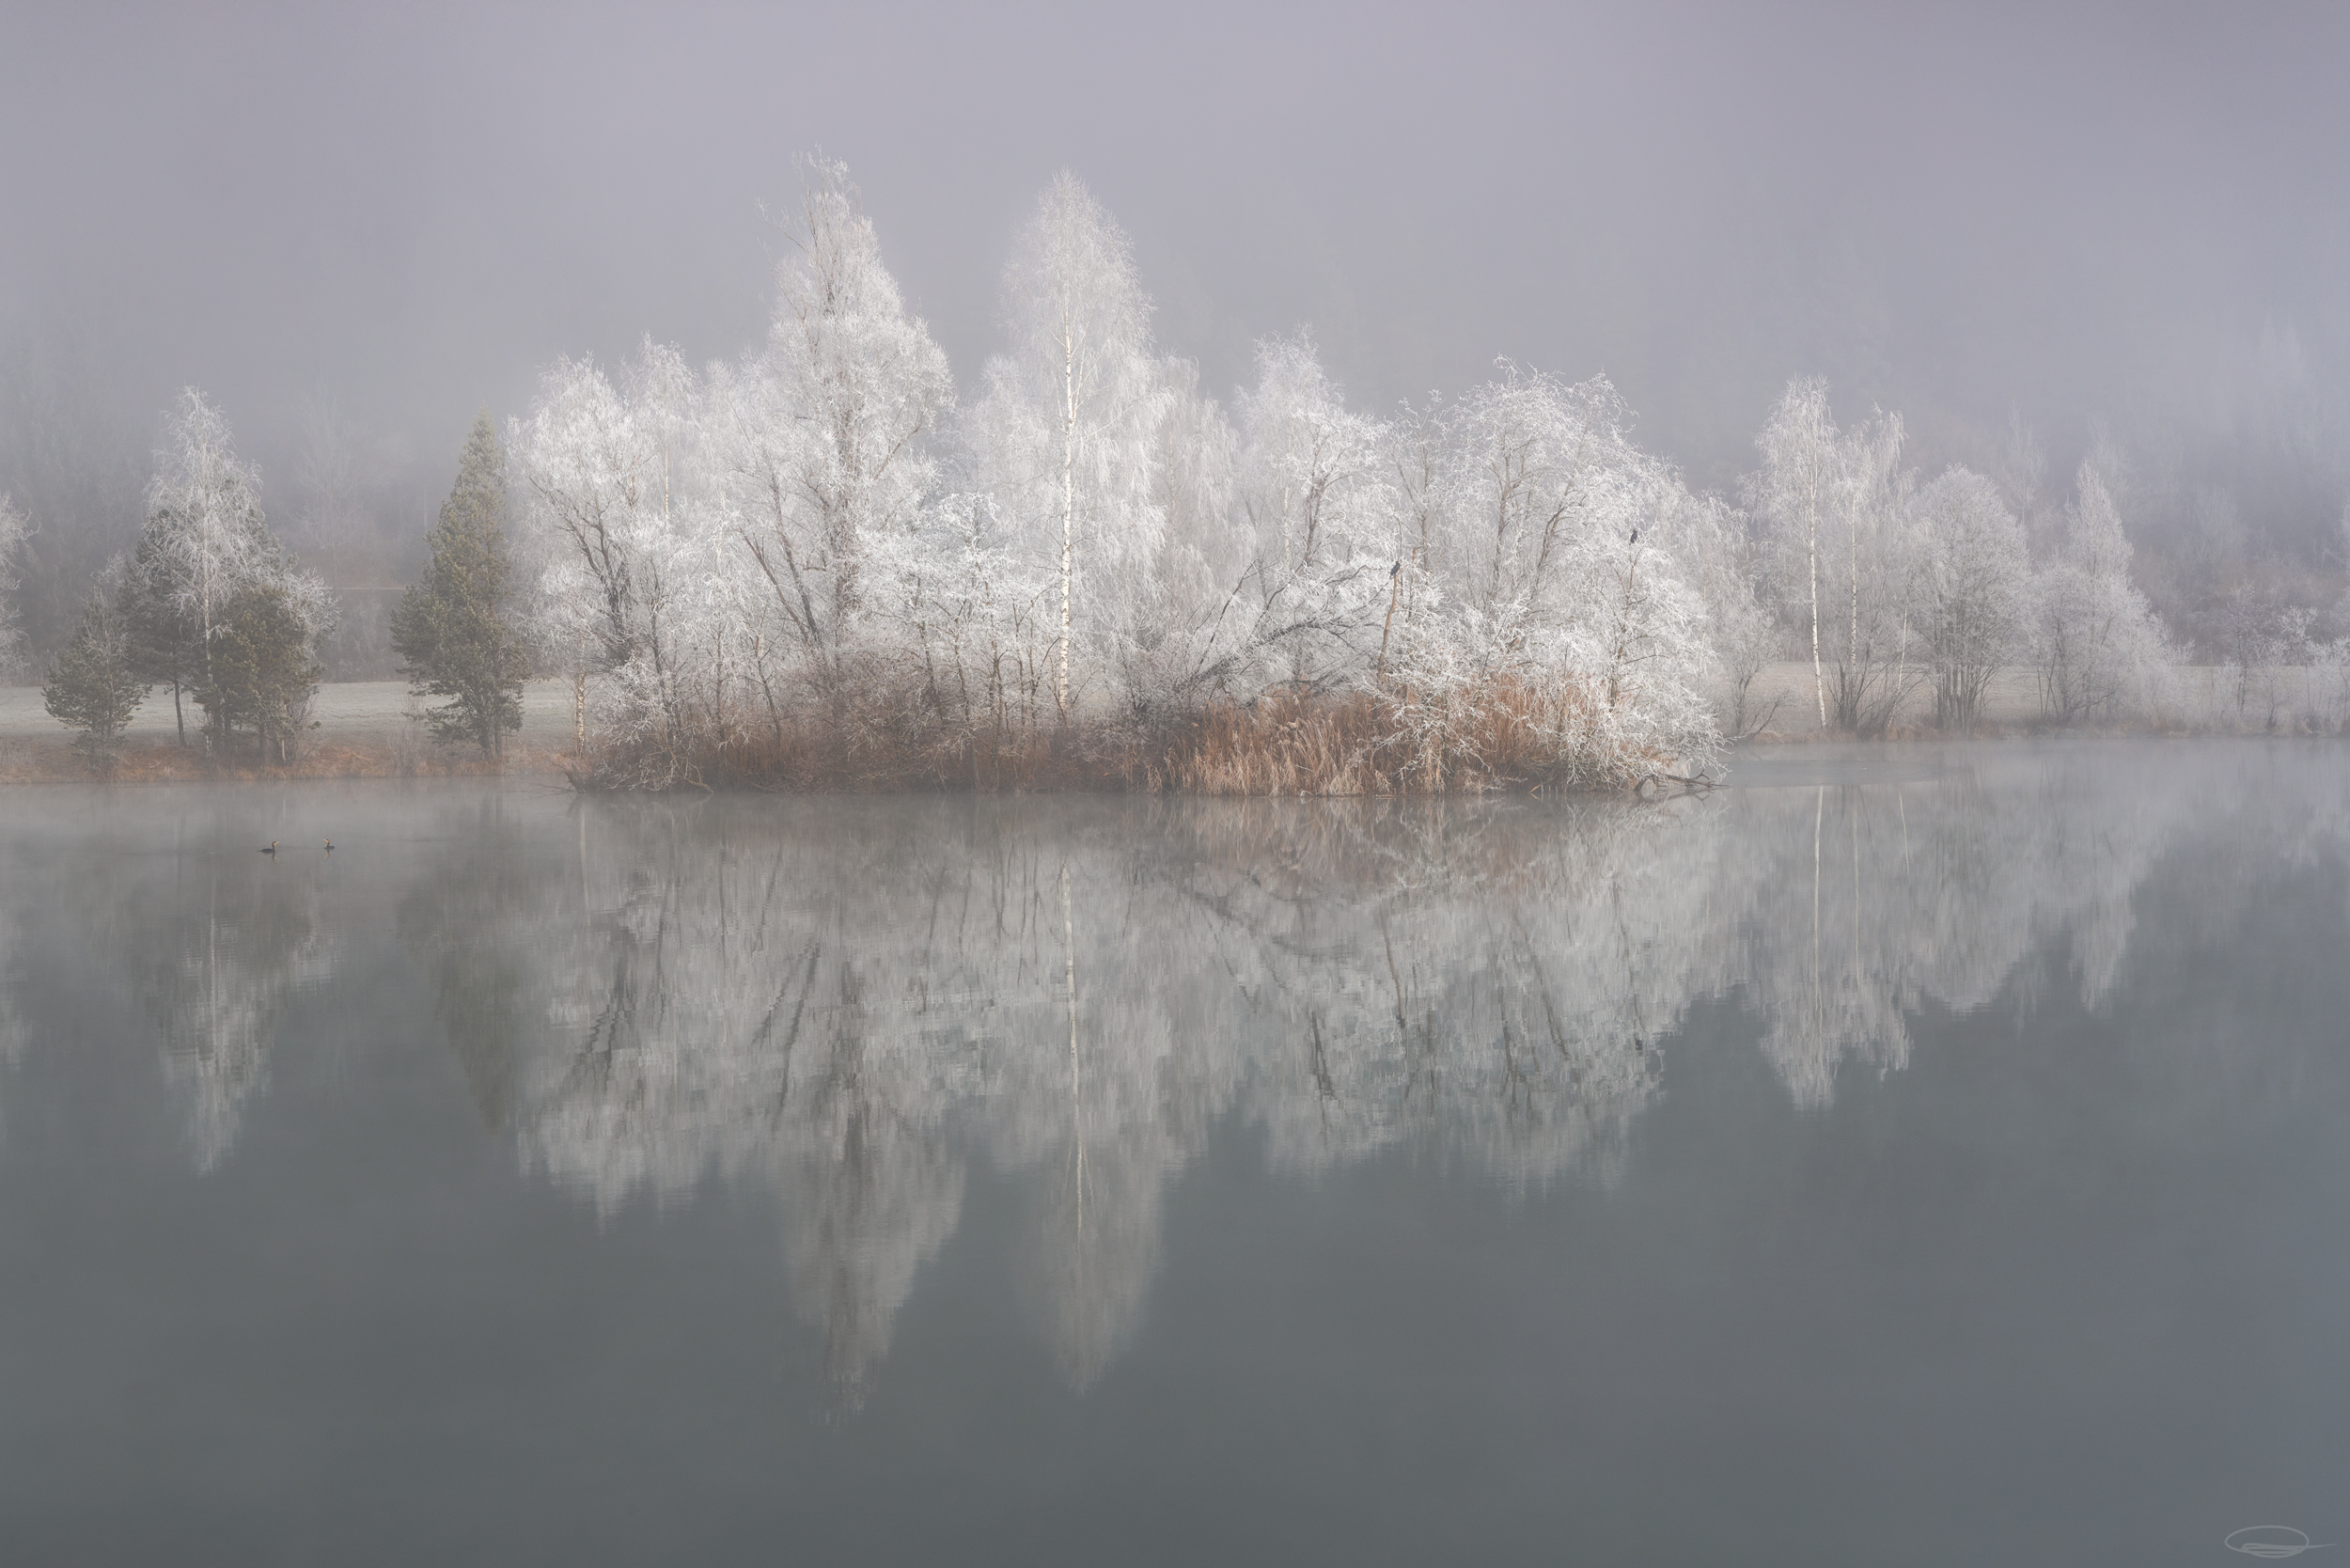 Fog & Frost - Linsendorfer See